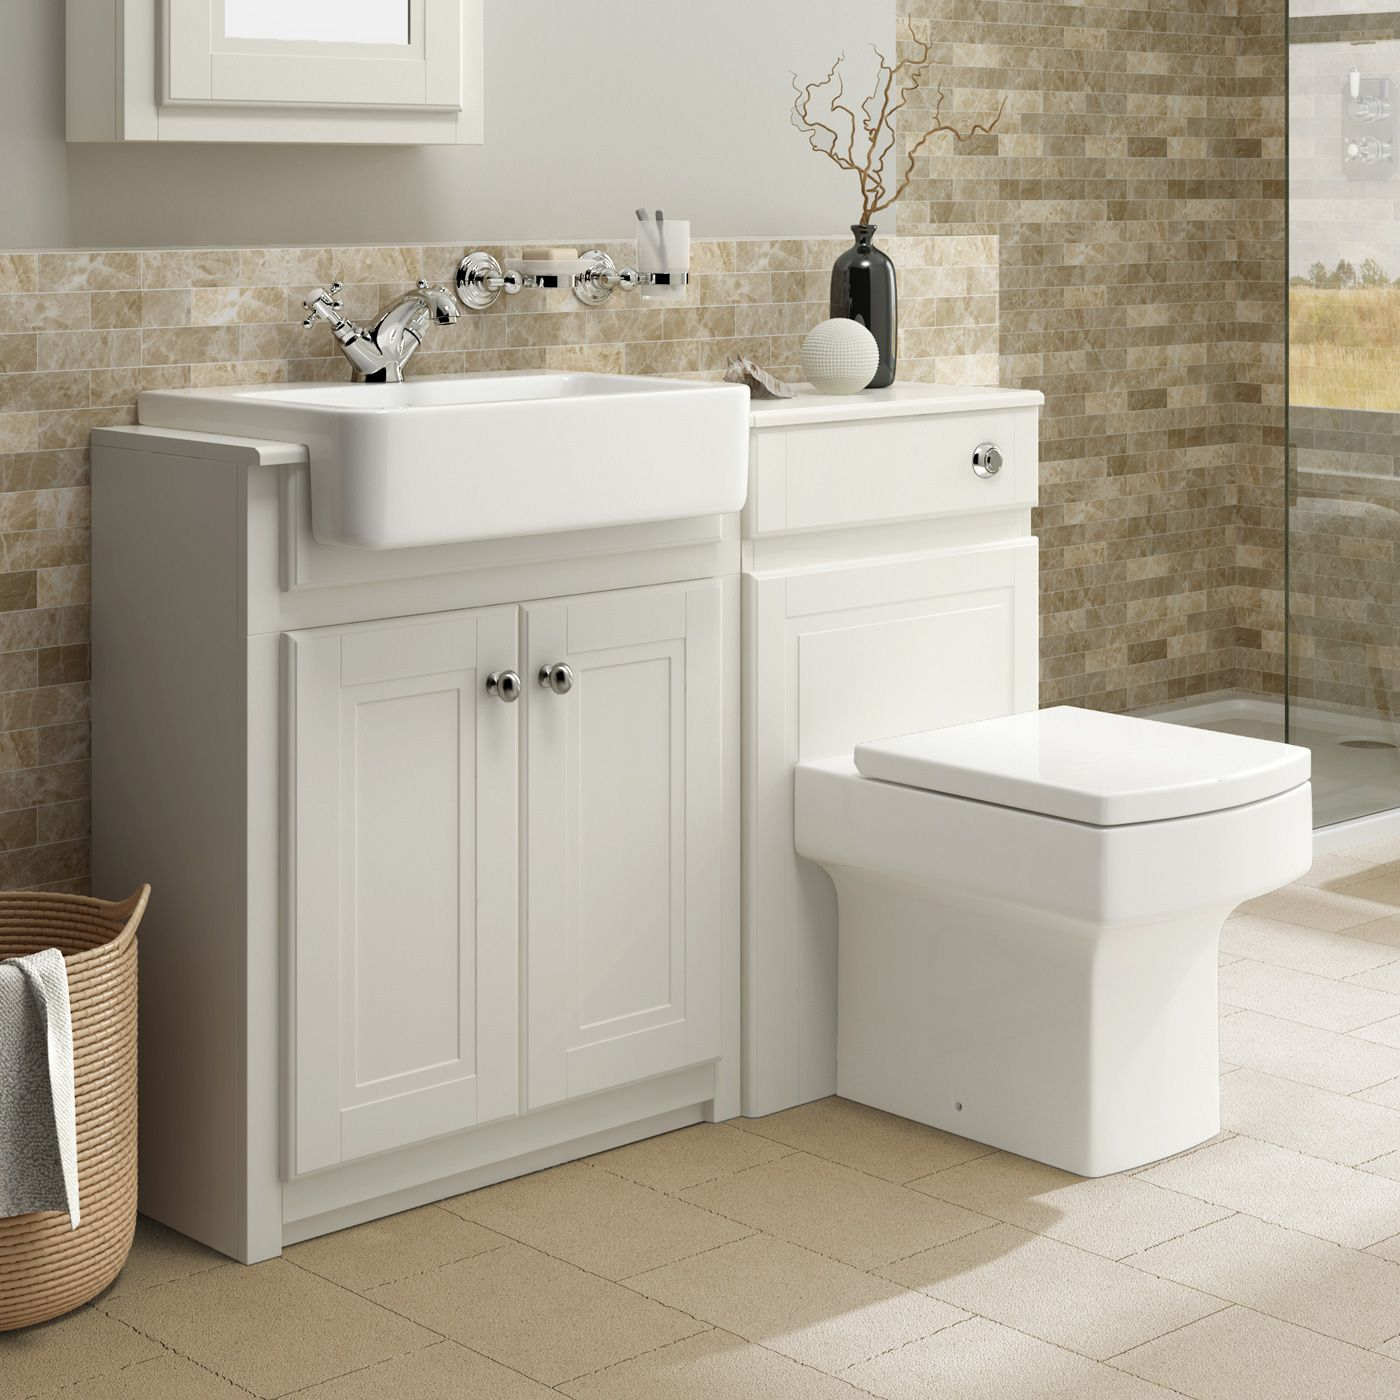 Are you looking for the bathroom of your dreams stunning at low